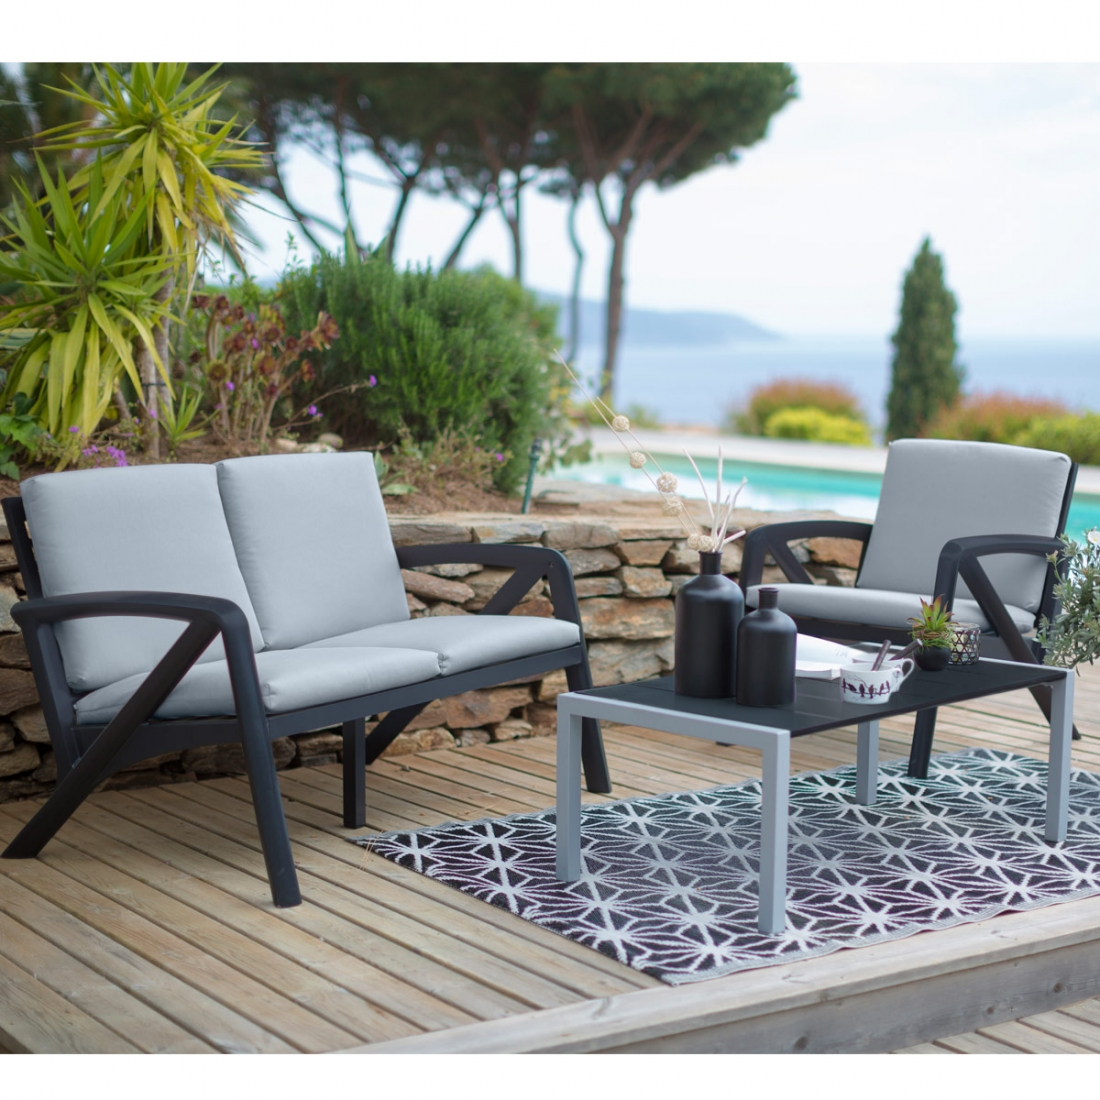 Salon de jardin lounge sunday barcelone design grosfillex for Salon de jardin exterieur design